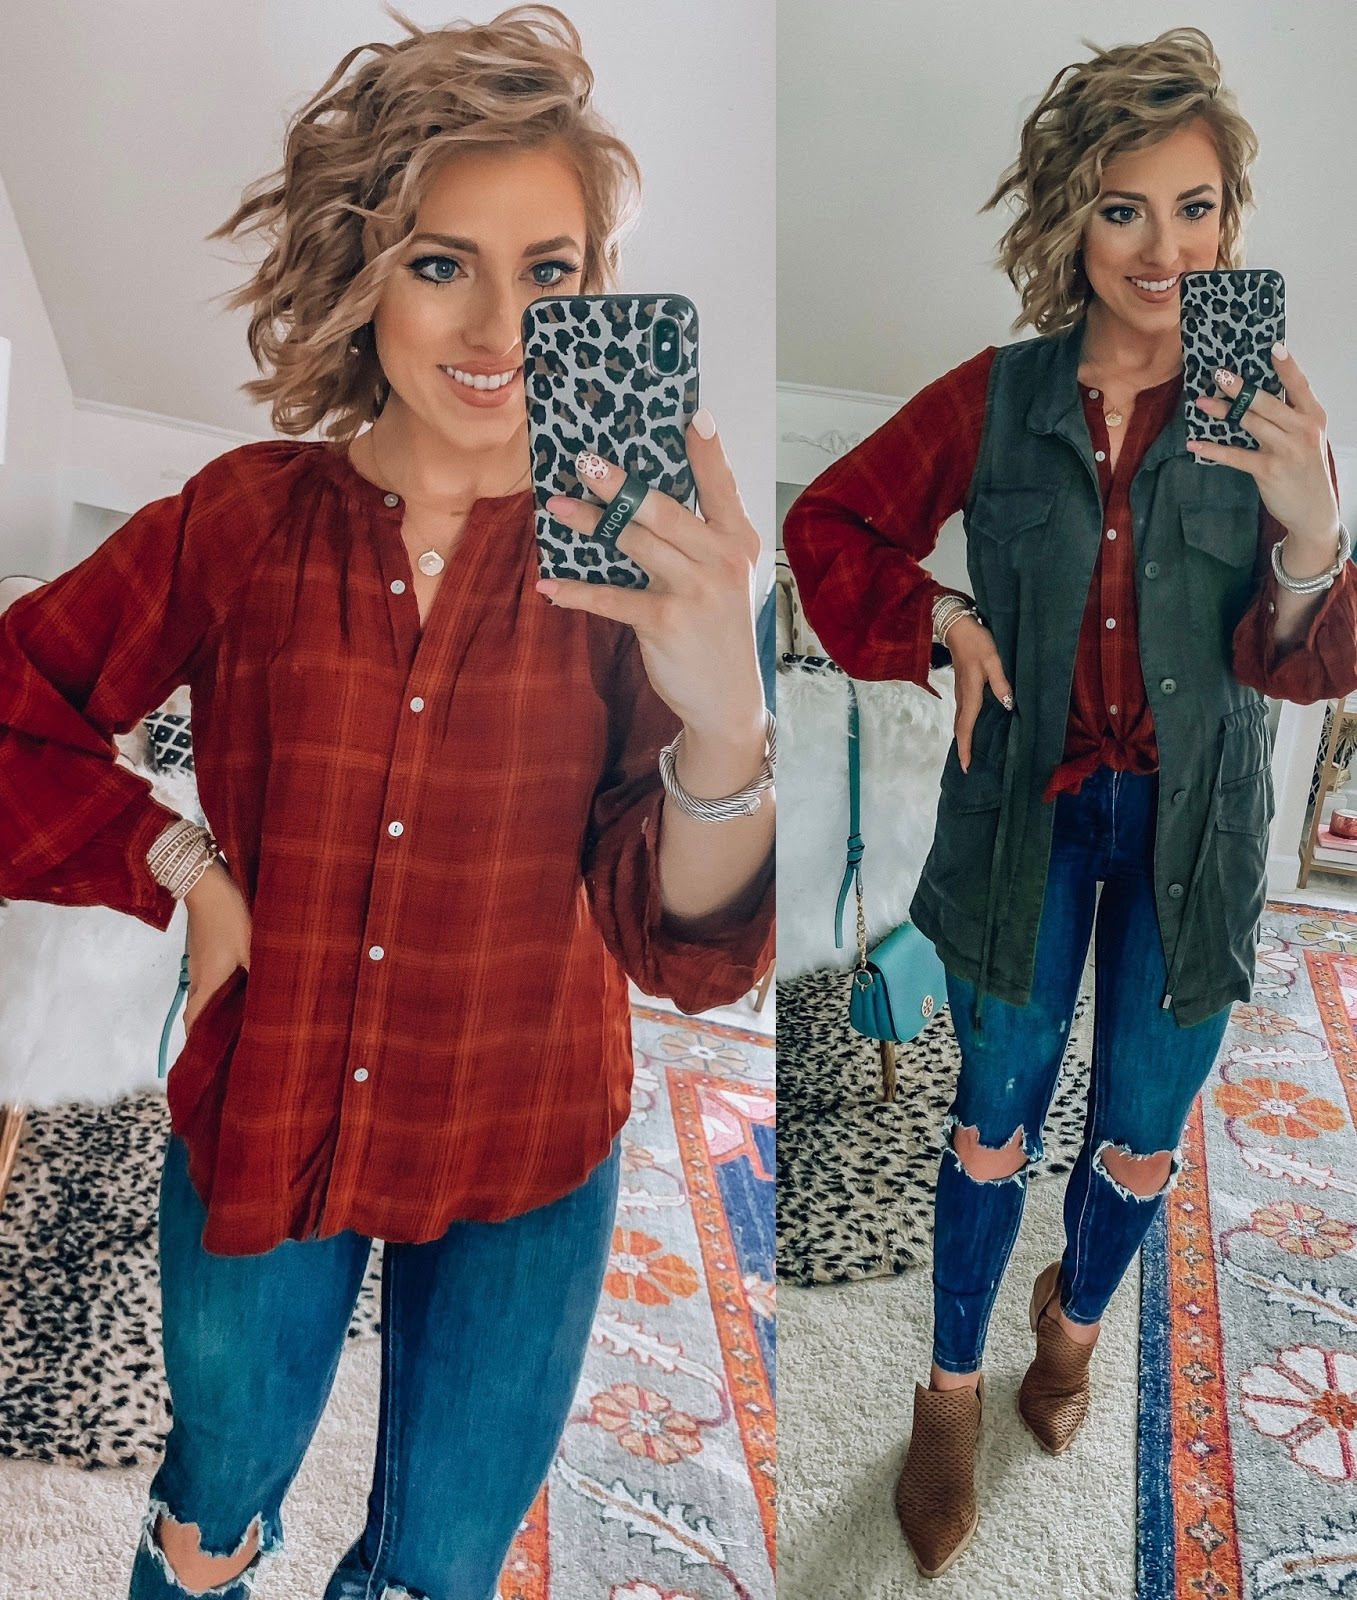 Target Fall Finds: Part 2 - Under $30 Plaid Top with Military Vest - Something Delightful Blog #fallfashion #leopard #pajamas #targetstyle #targetfallfinds